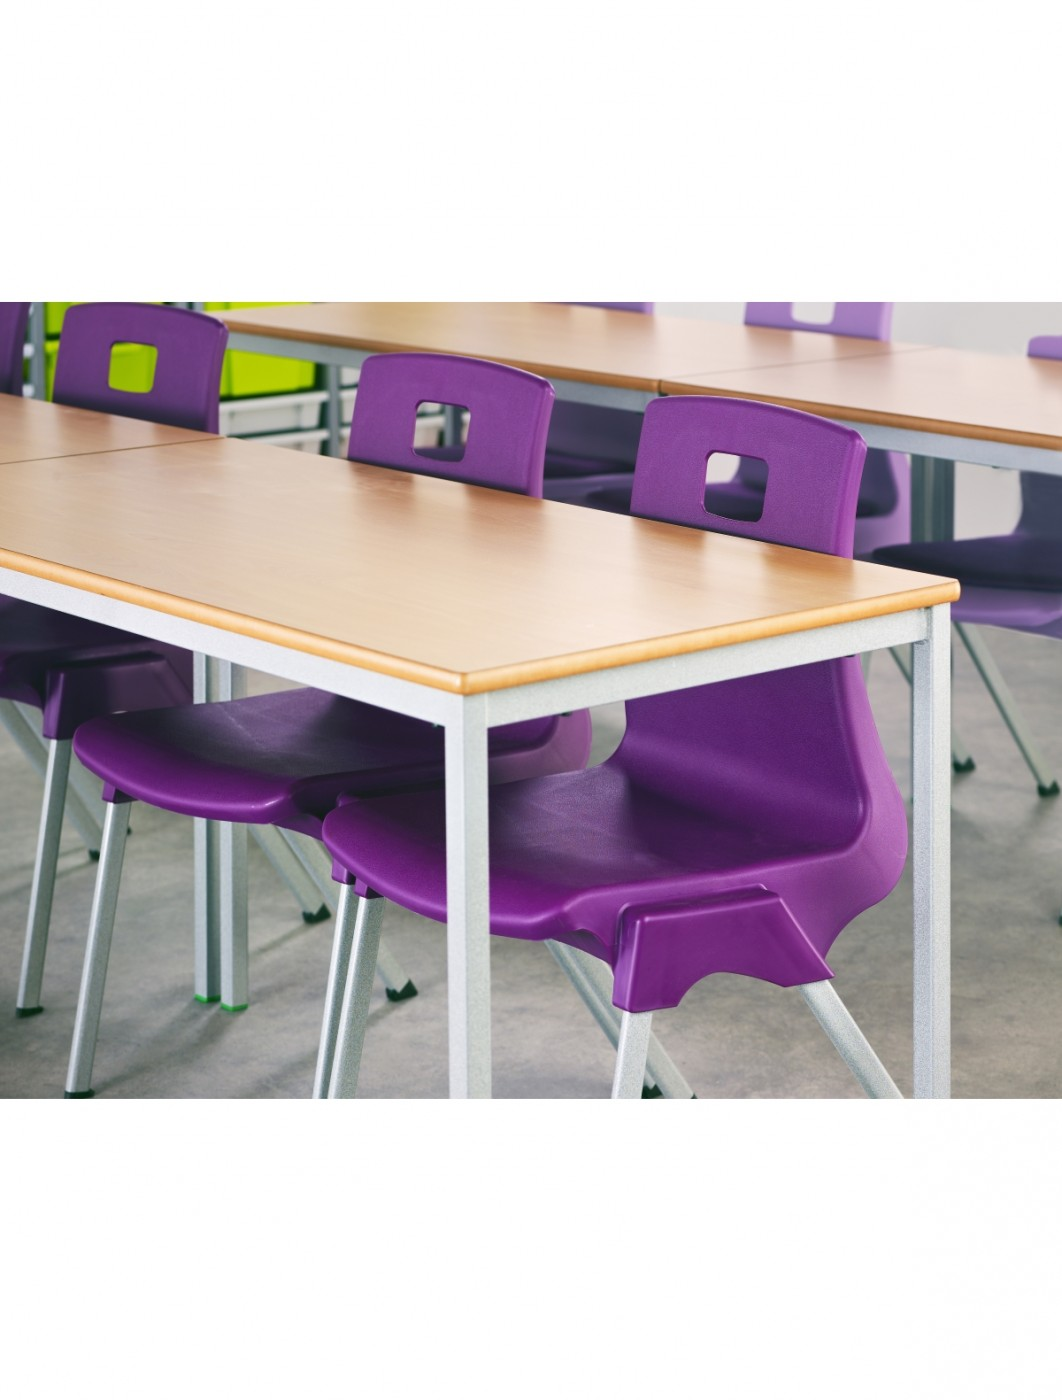 Classroom Tables - 1800x750mm Rectangular Stacking Tables SQSS-187-MD - Fully Welded